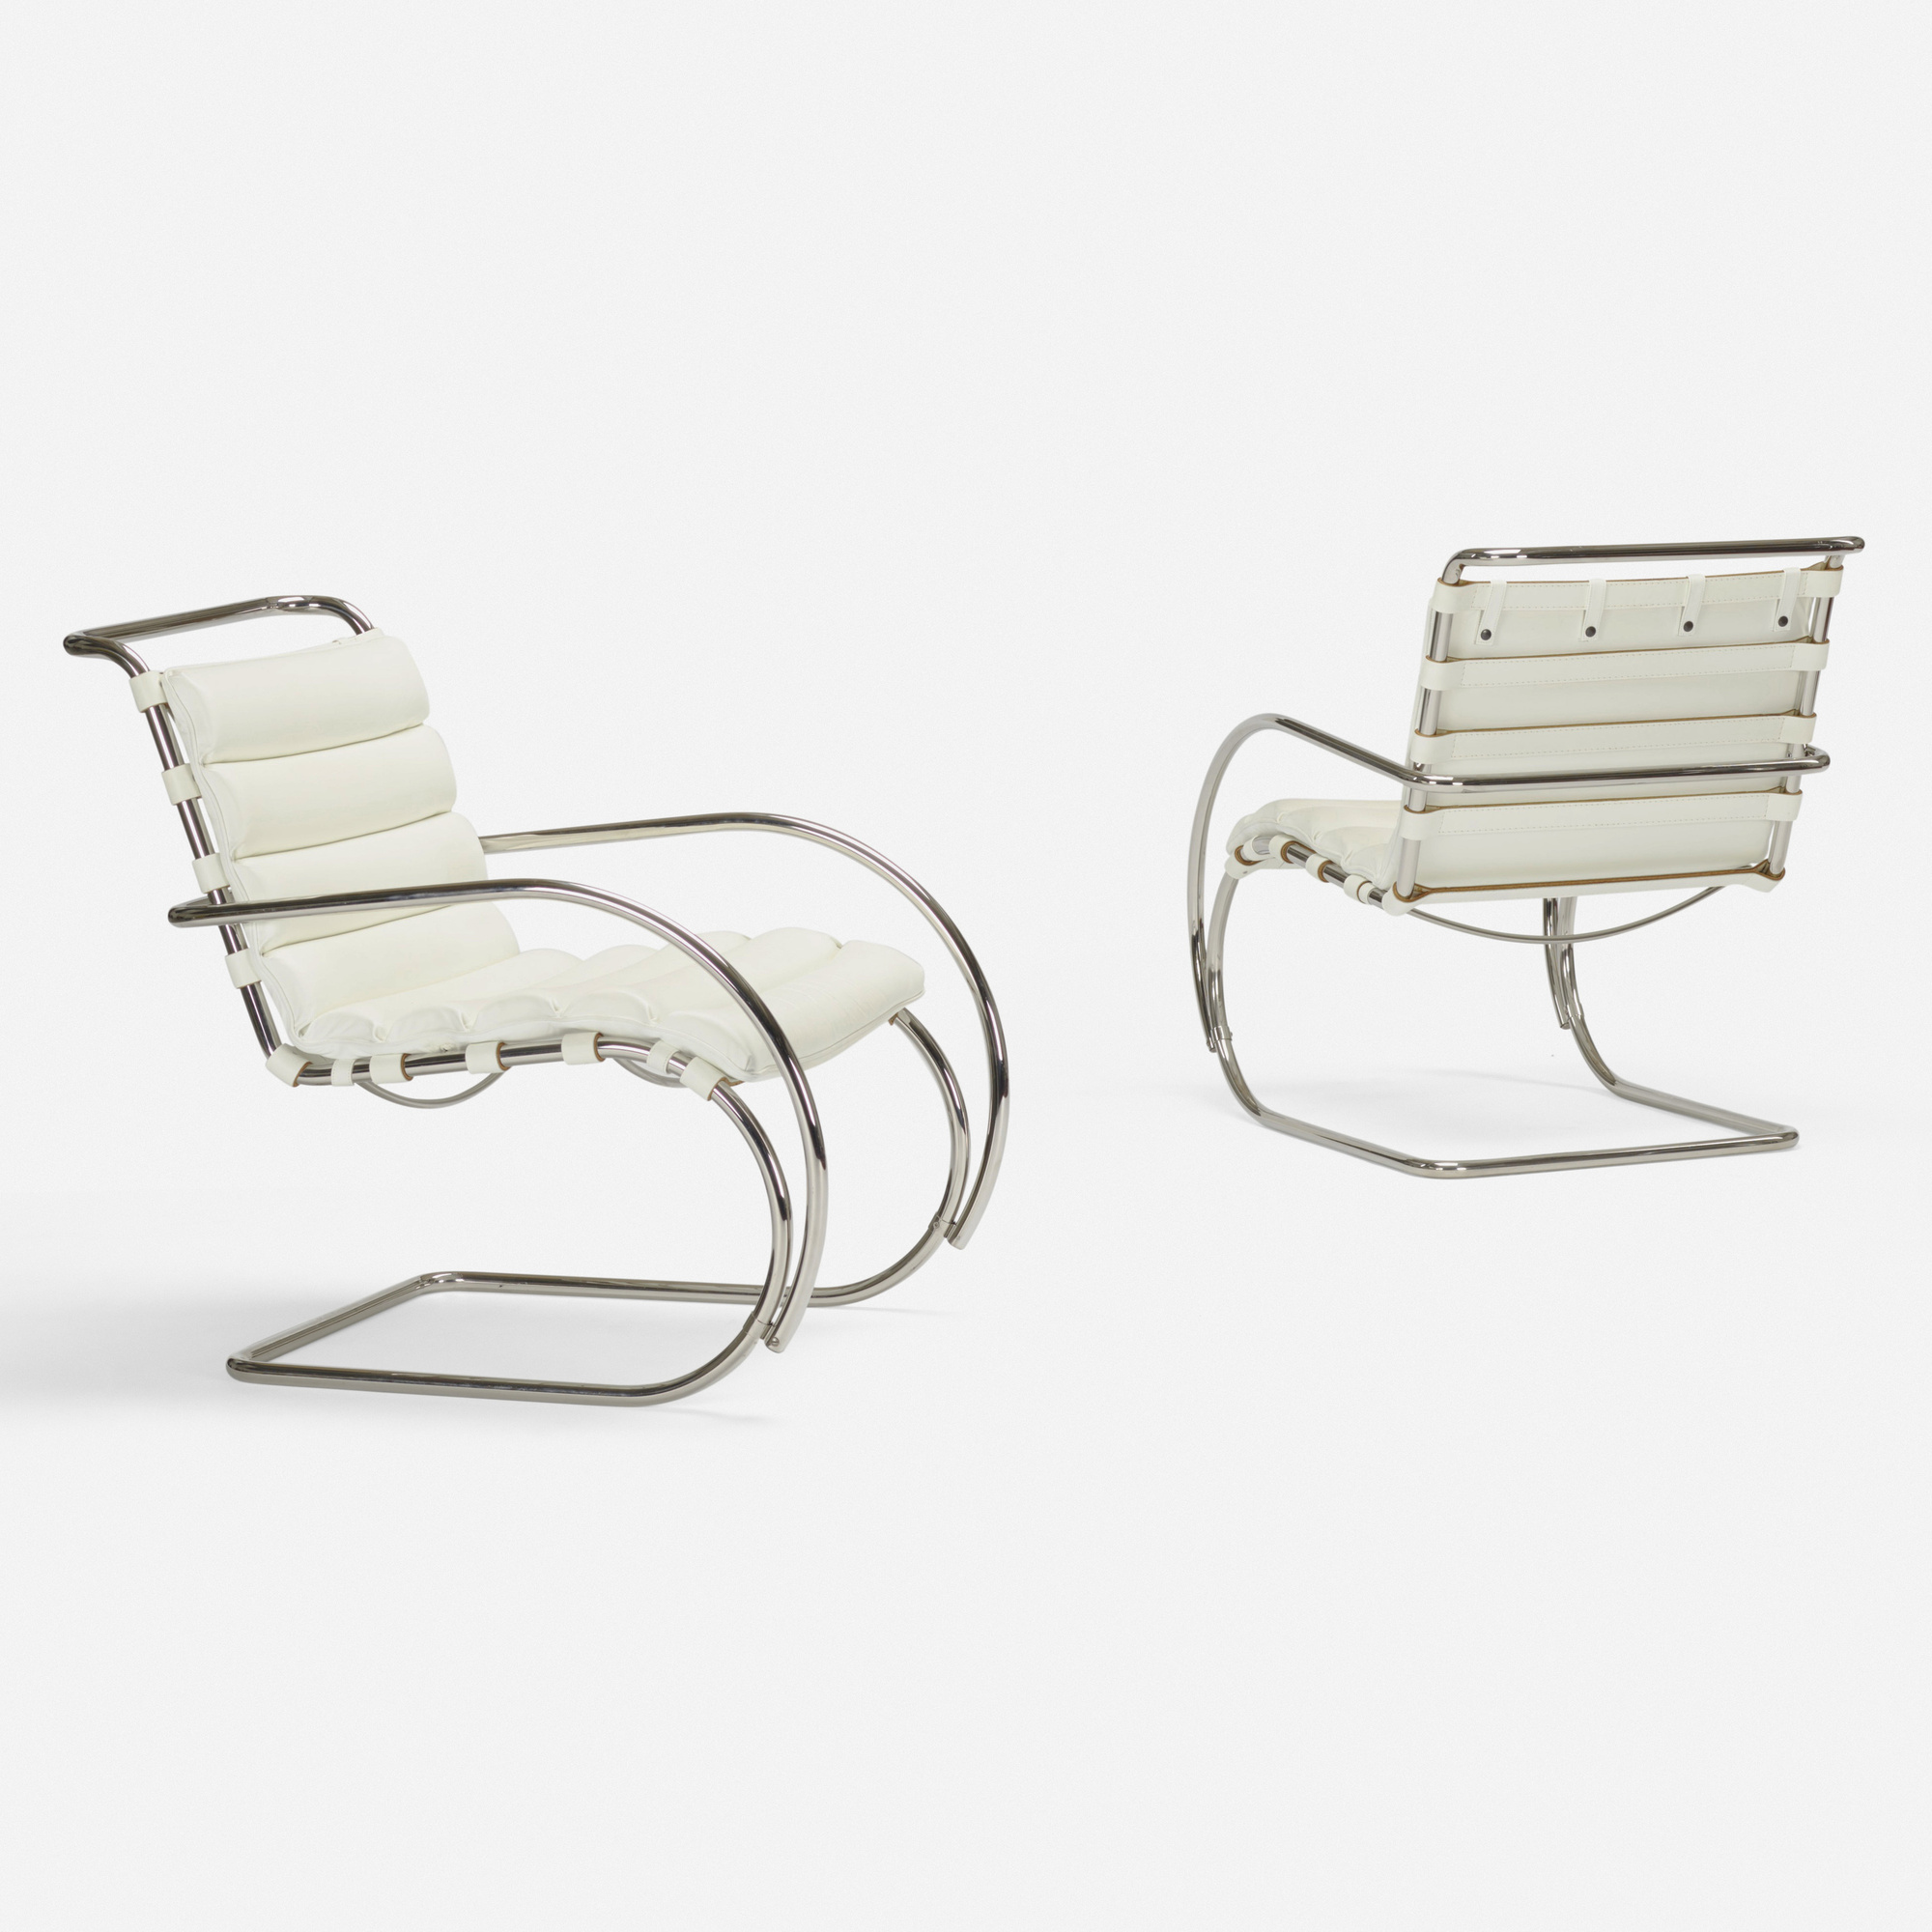 Swell 356 Ludwig Mies Van Der Rohe Mr Lounge Chairs Pair Art Squirreltailoven Fun Painted Chair Ideas Images Squirreltailovenorg